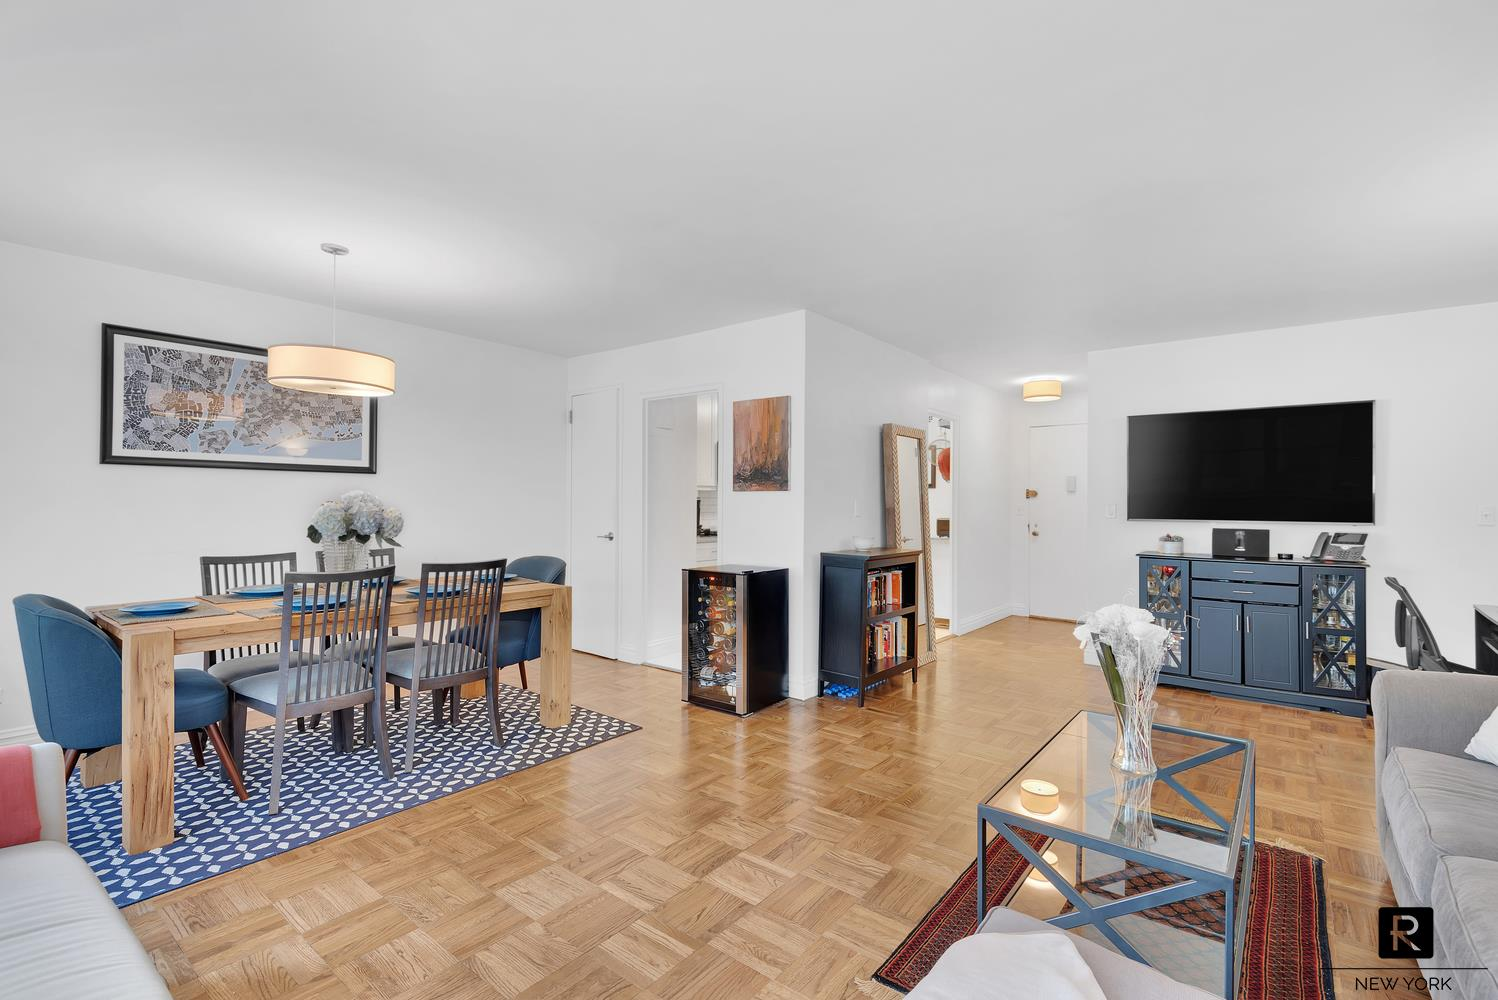 Apartment for sale at 15 West 72nd Street, Apt 2-A